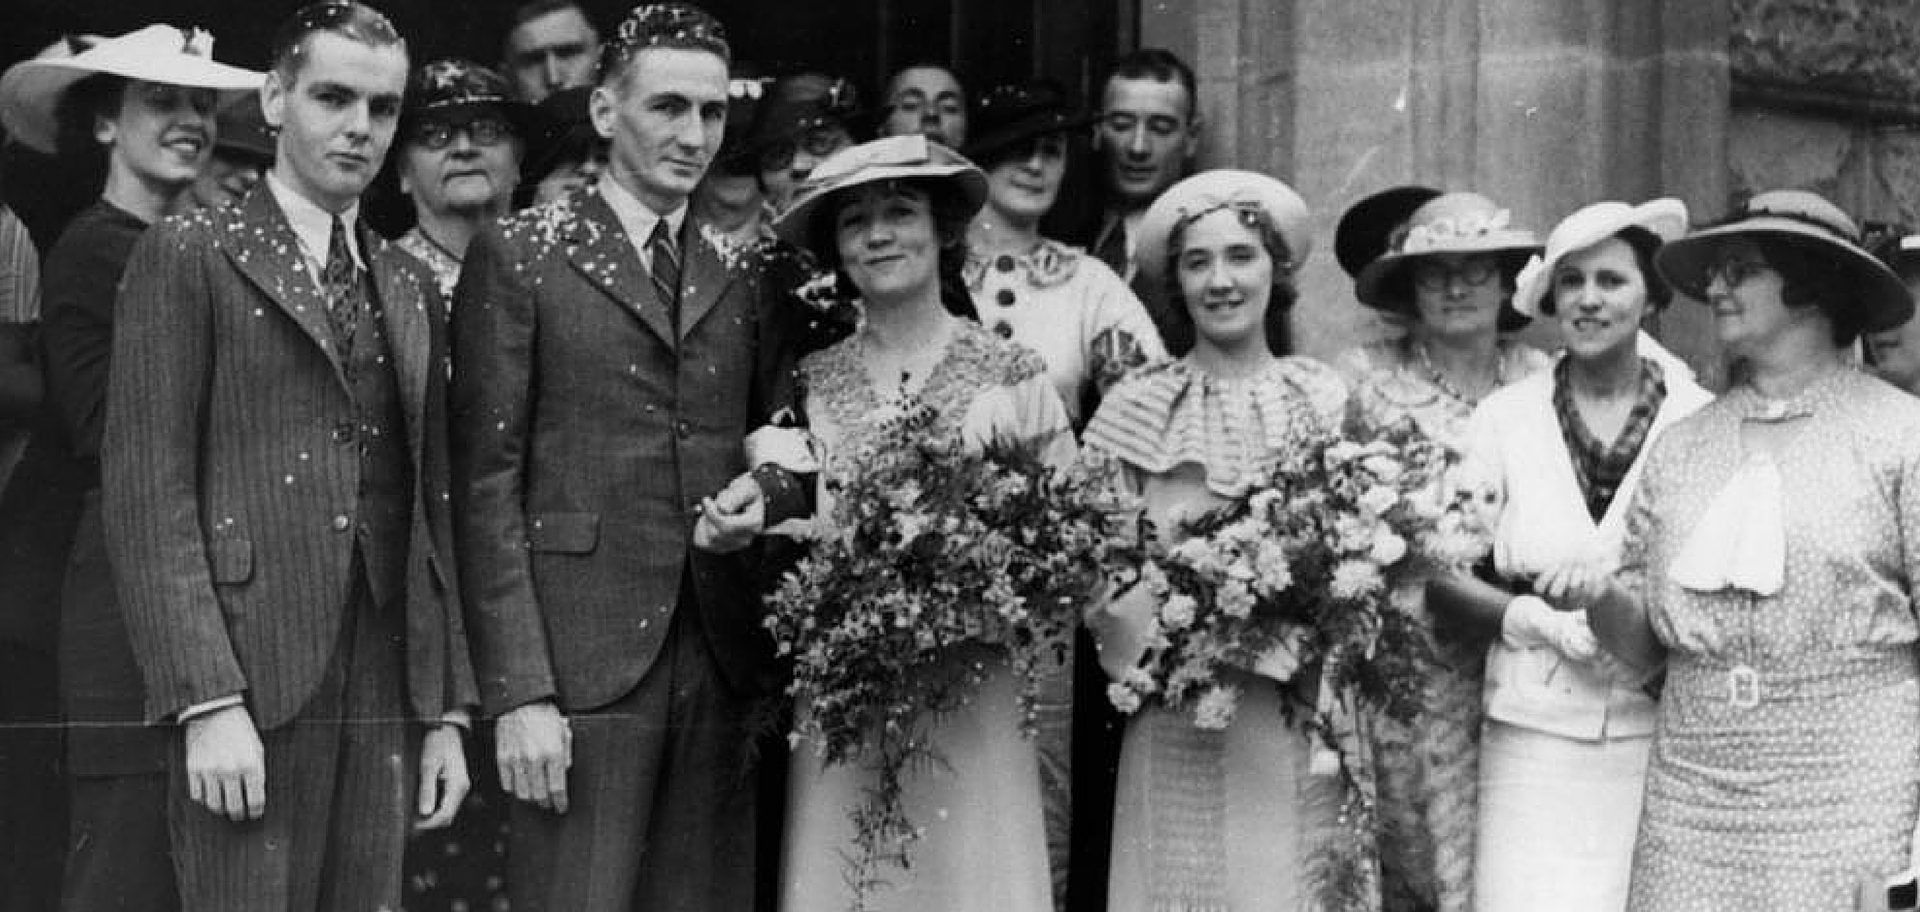 Wedding traditions throughout the ages